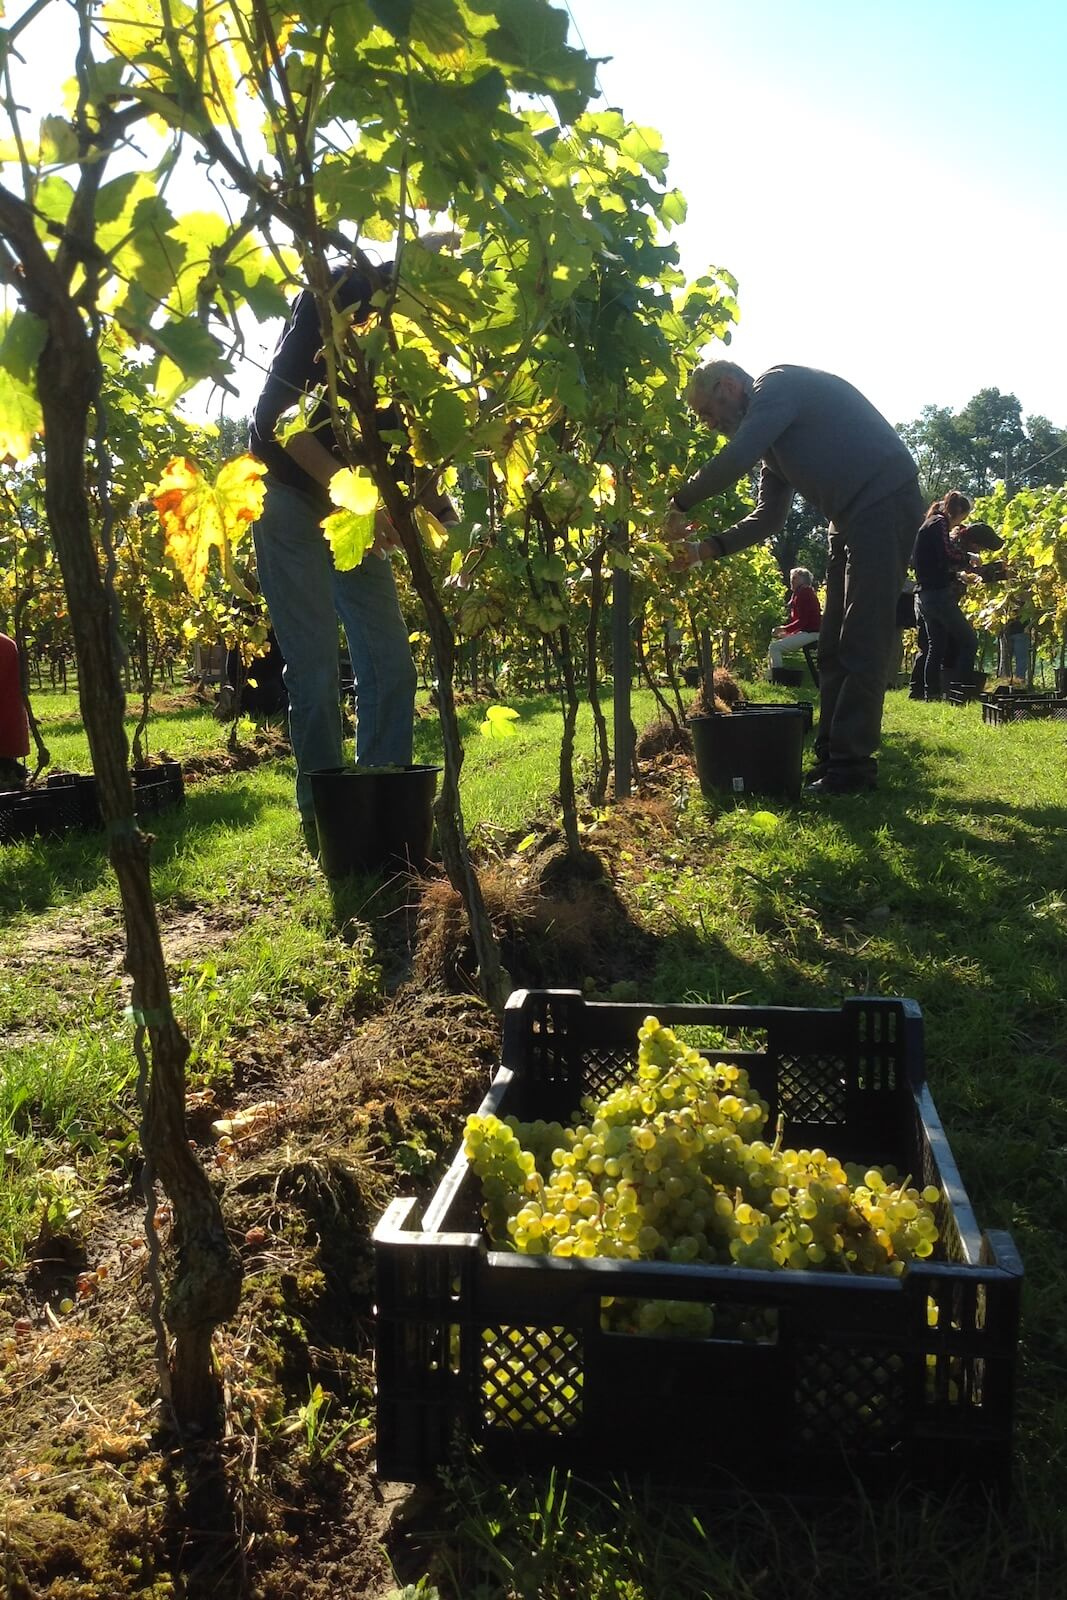 The grapes are being handpicked at Wijngaard Hof van Twente